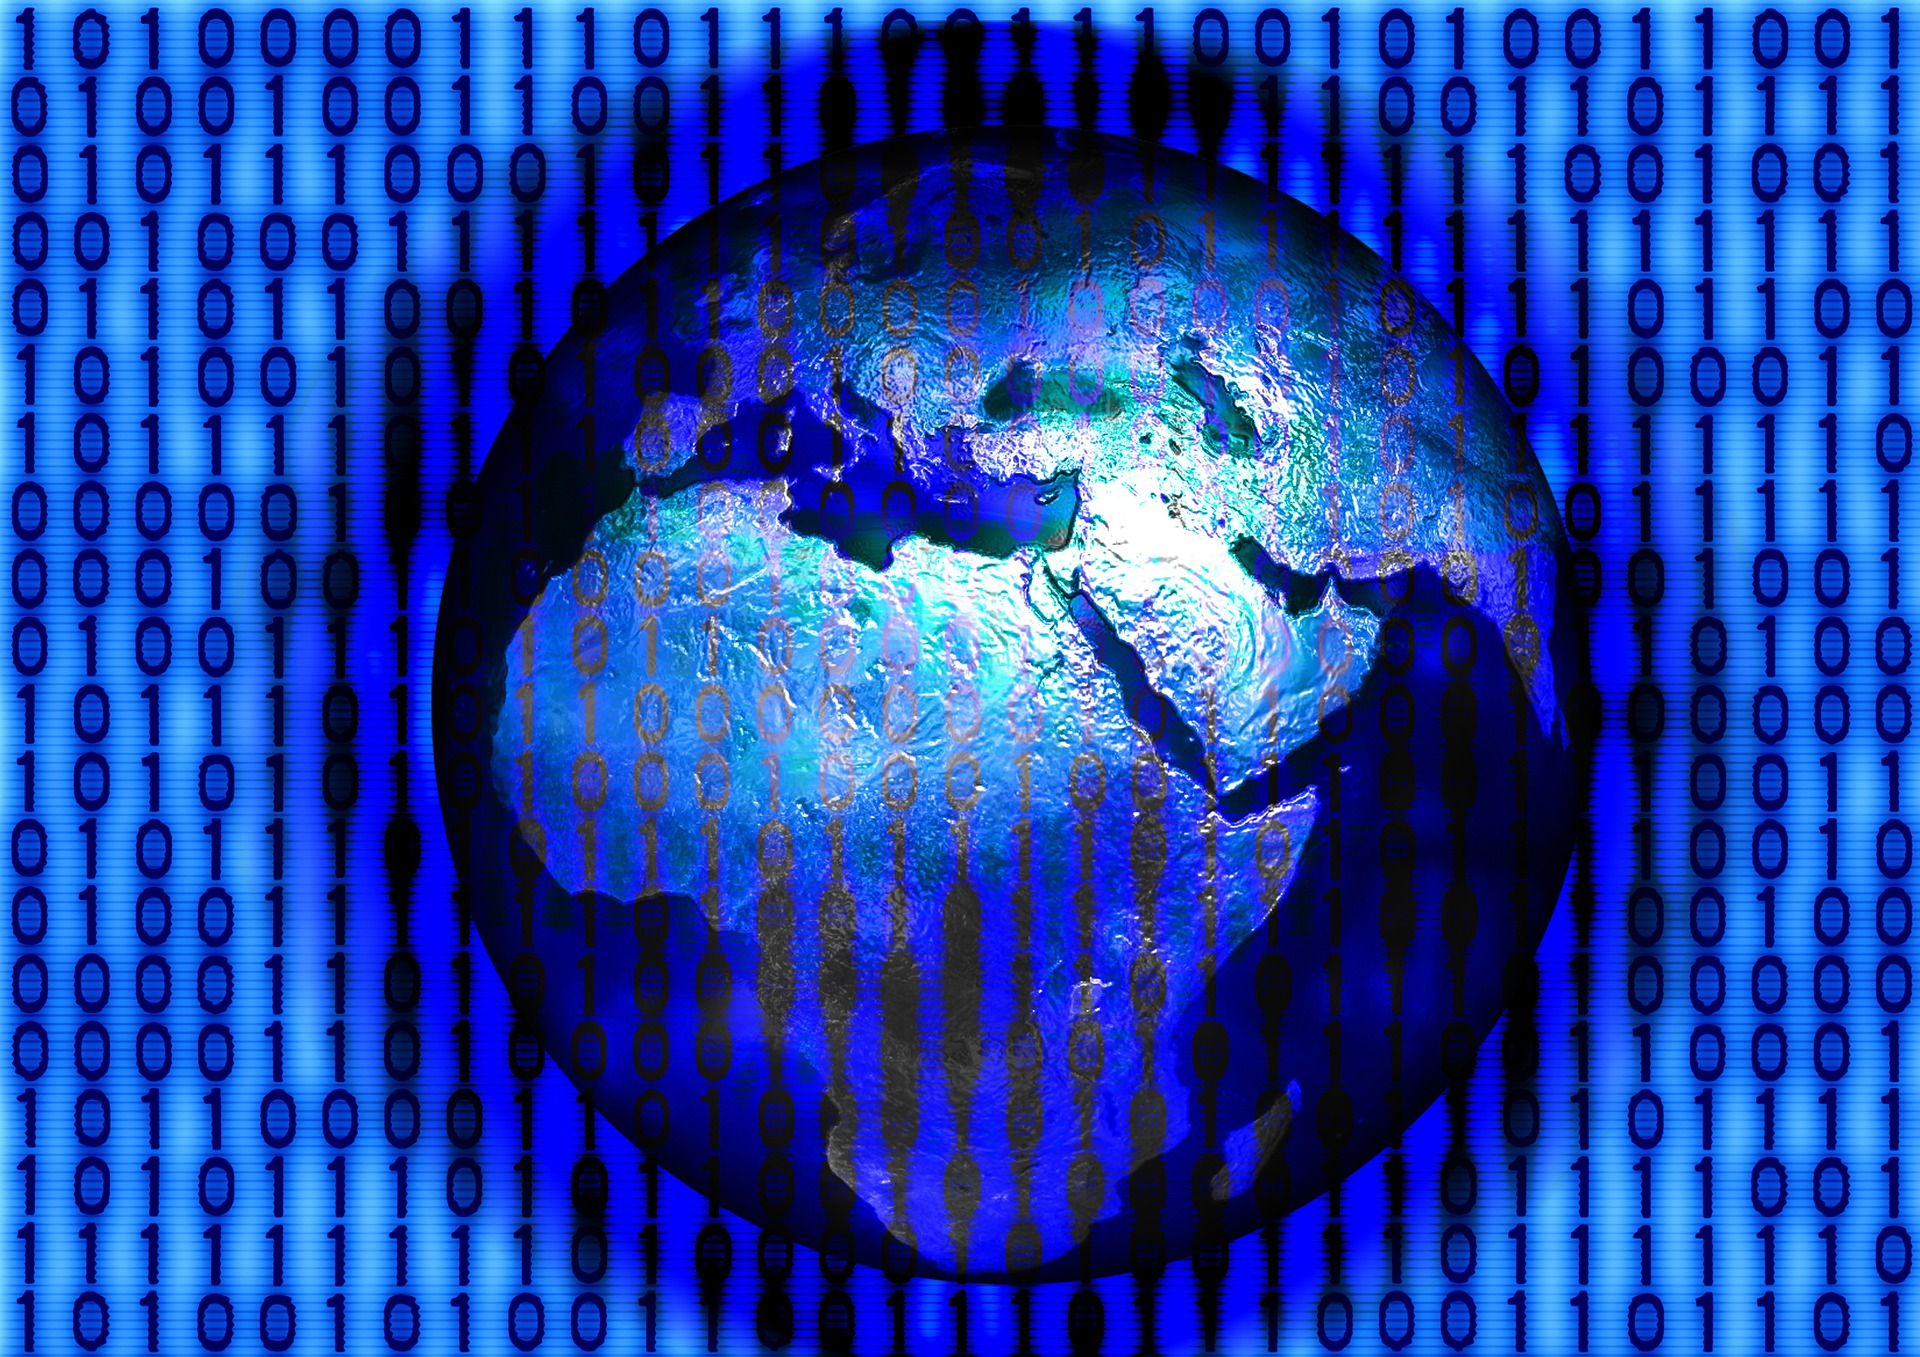 Re-energising the narrative: human rights in the digital age (WP1655)